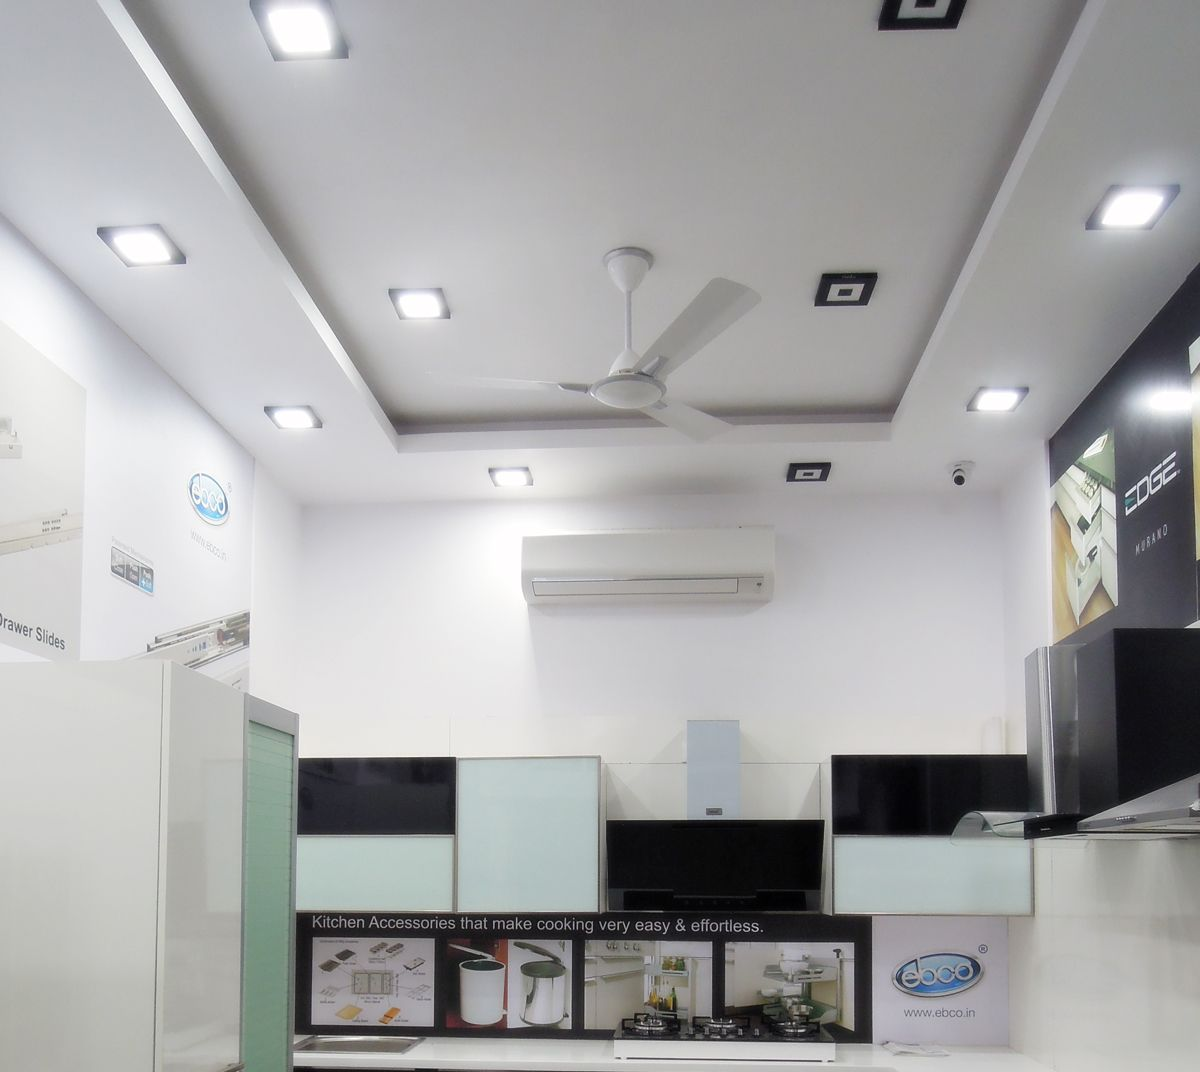 8w led recessed light for false ceiling ideas for the house pinterest false ceiling ideas - Lights used in false ceiling ...